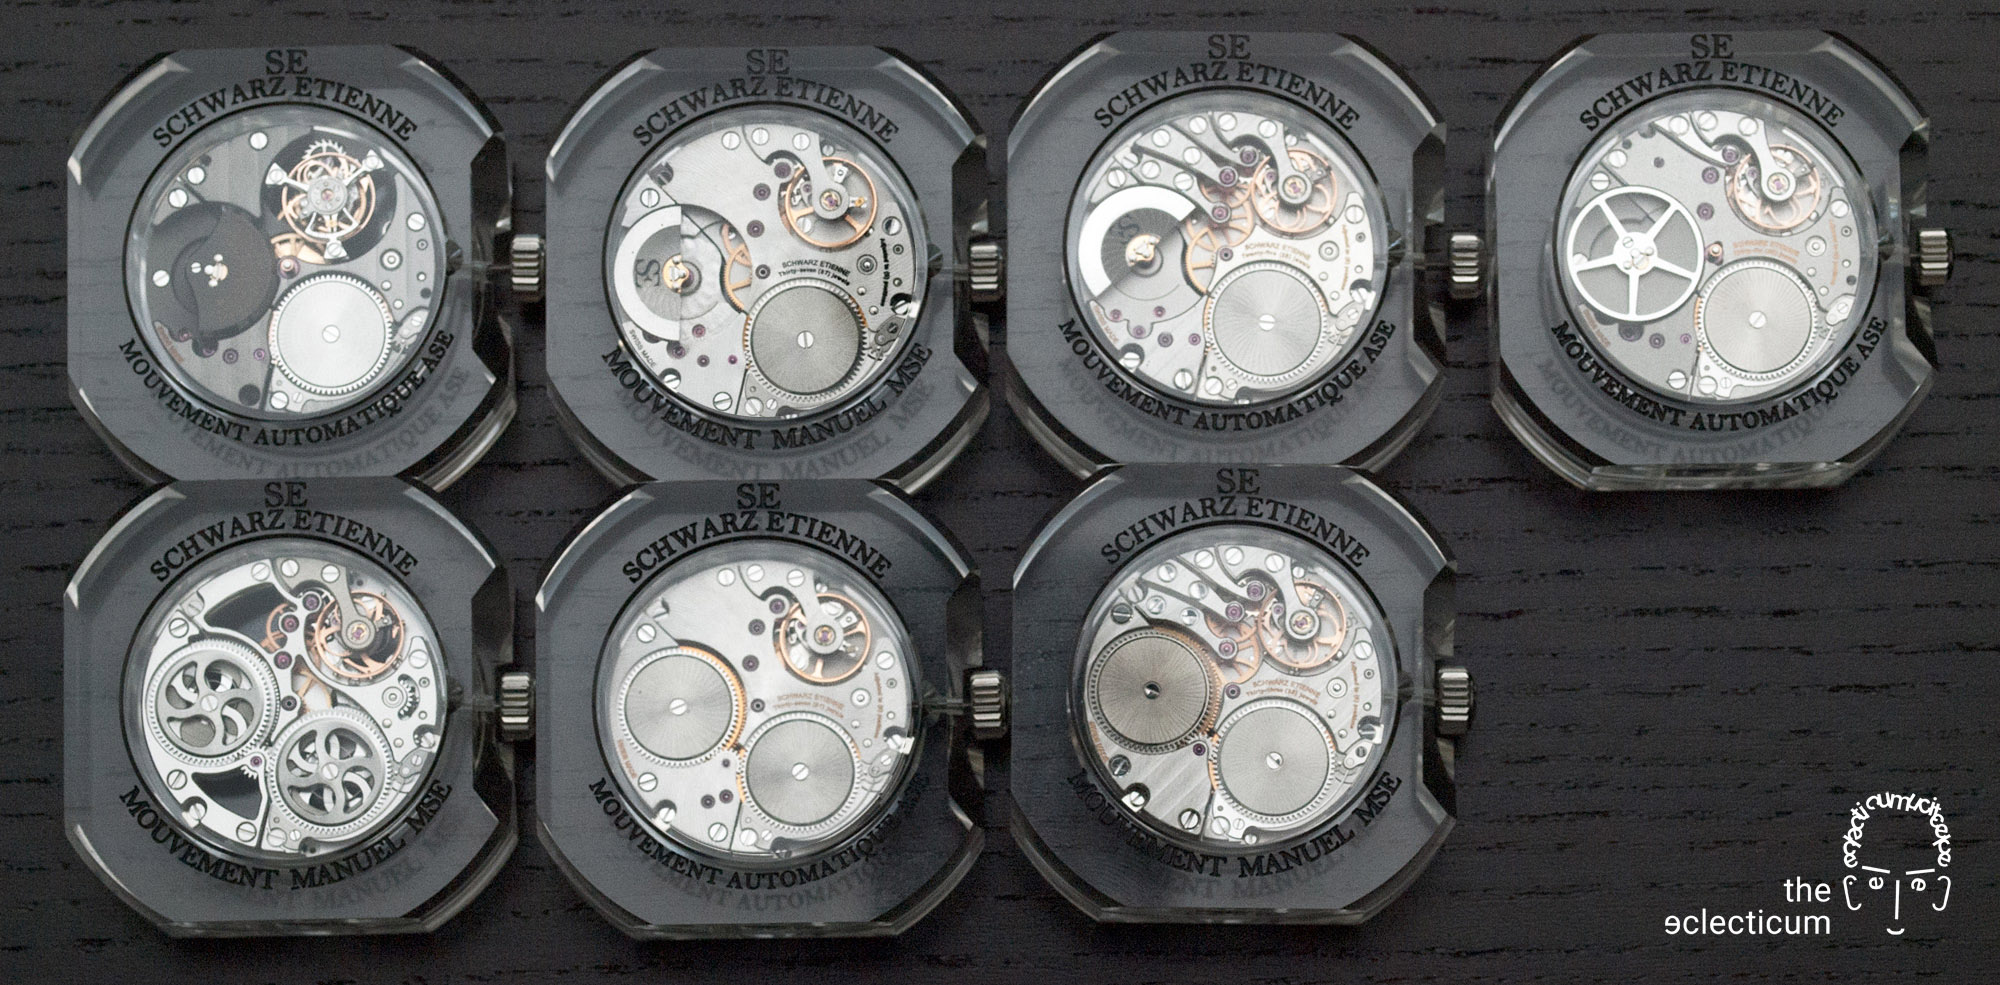 Schwarz Etienne movements in-house manufacture ASE MSE tourbillon micro-rotor